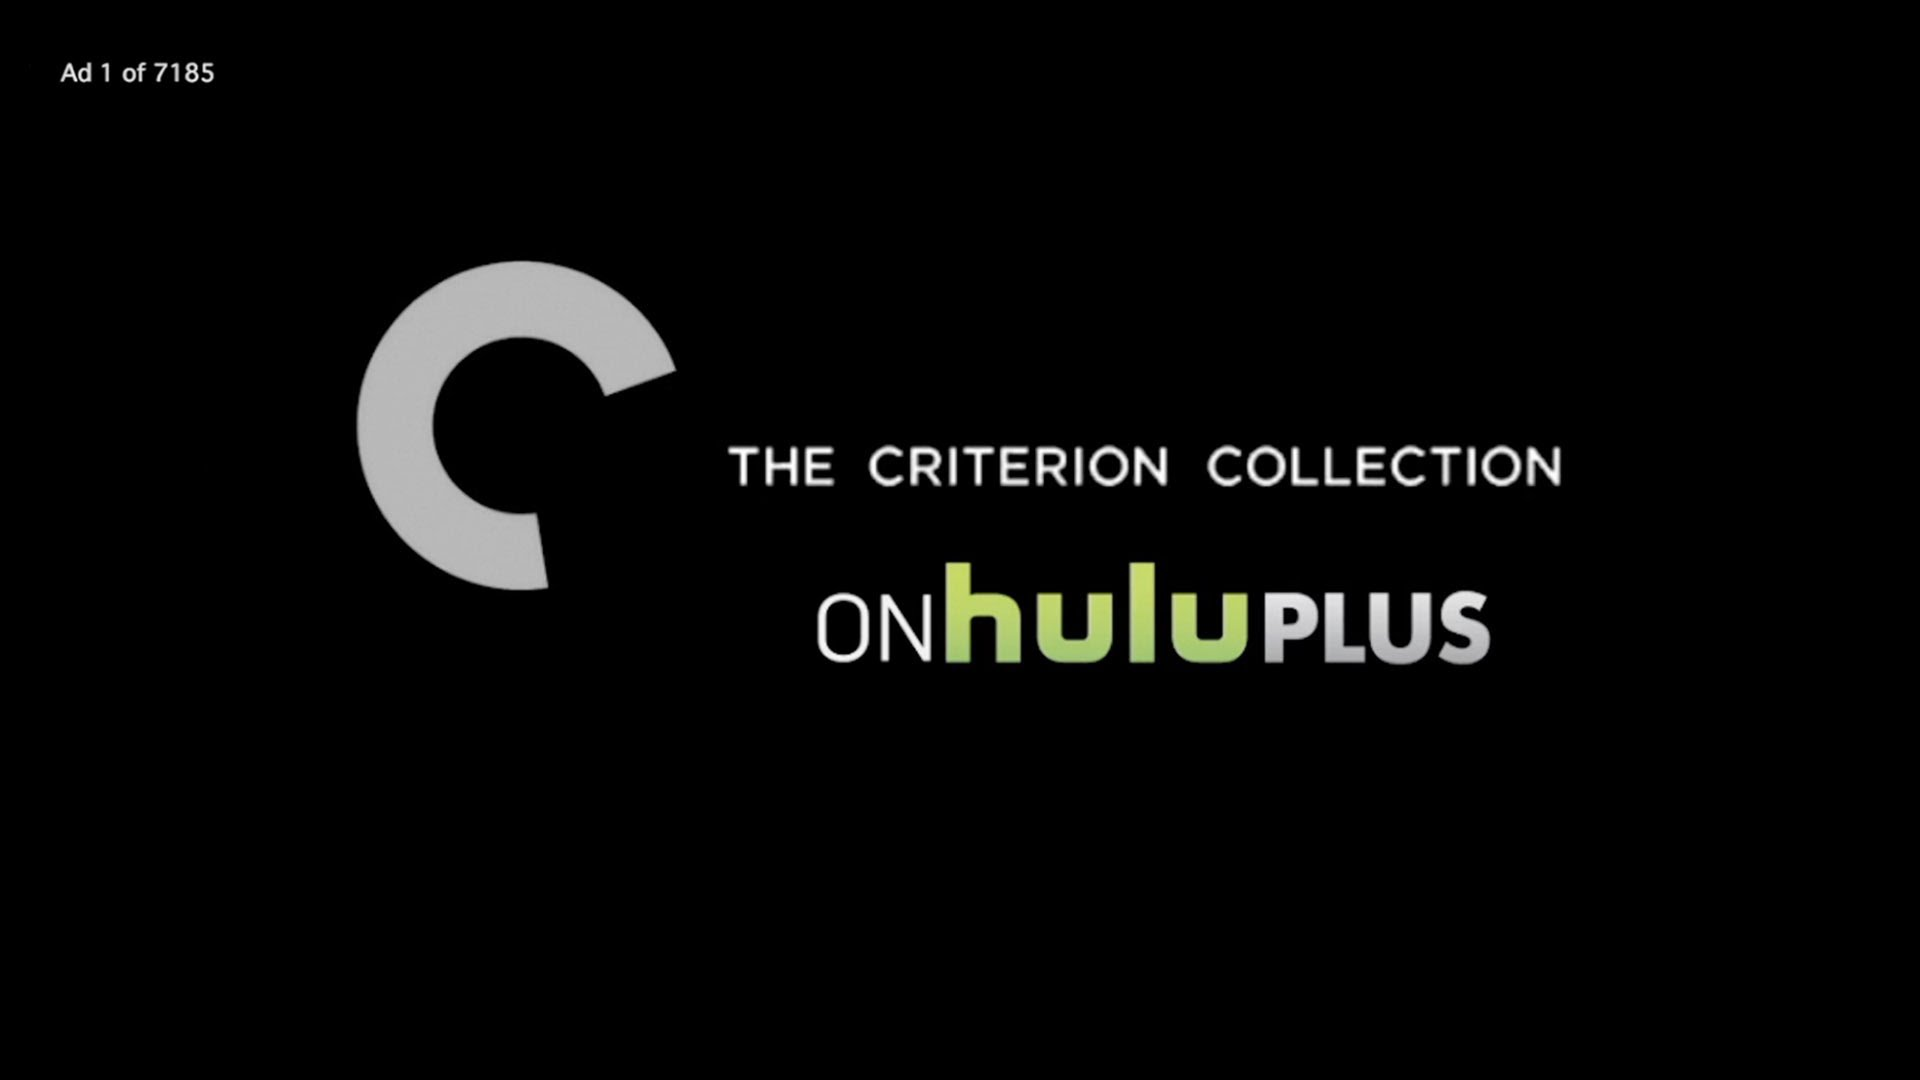 Criterion Collection Hulu Plus Commercial Parody.